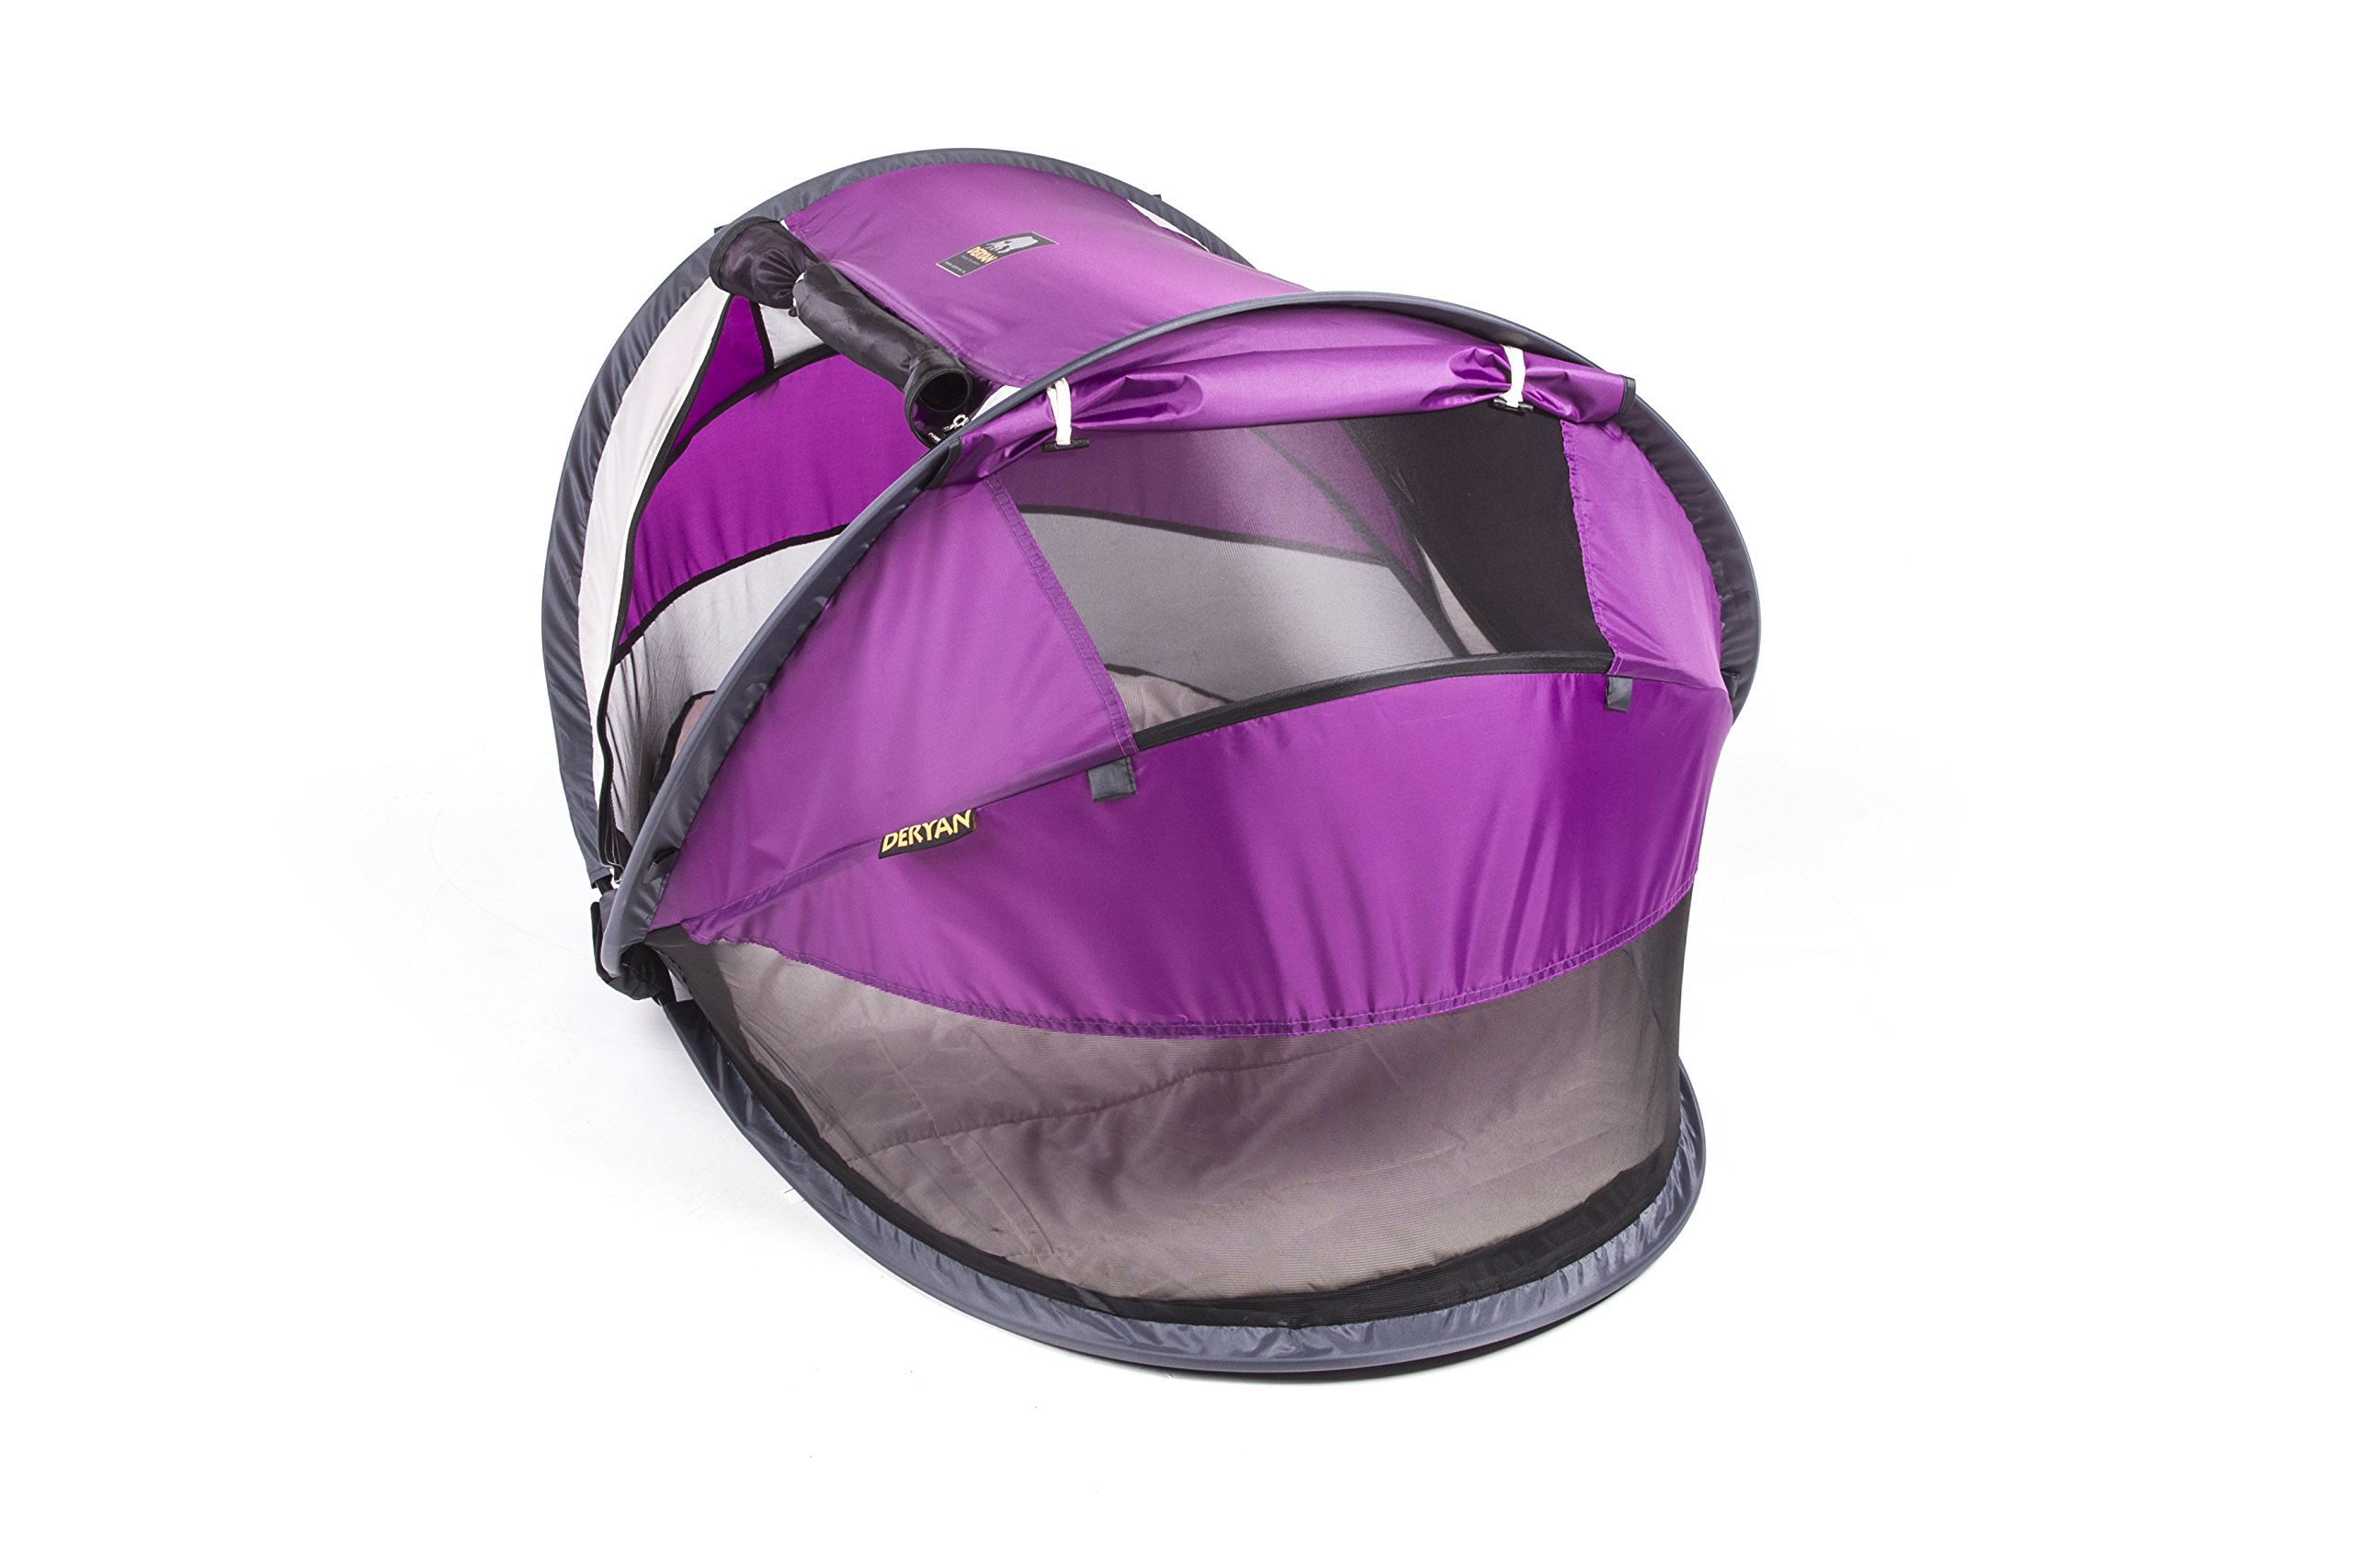 Travel Cot Peuter Luxe (Purple) Deryan 50% UV Protection and flame retardant fabric Setup in 2 seconds and a anti-musquito net  5